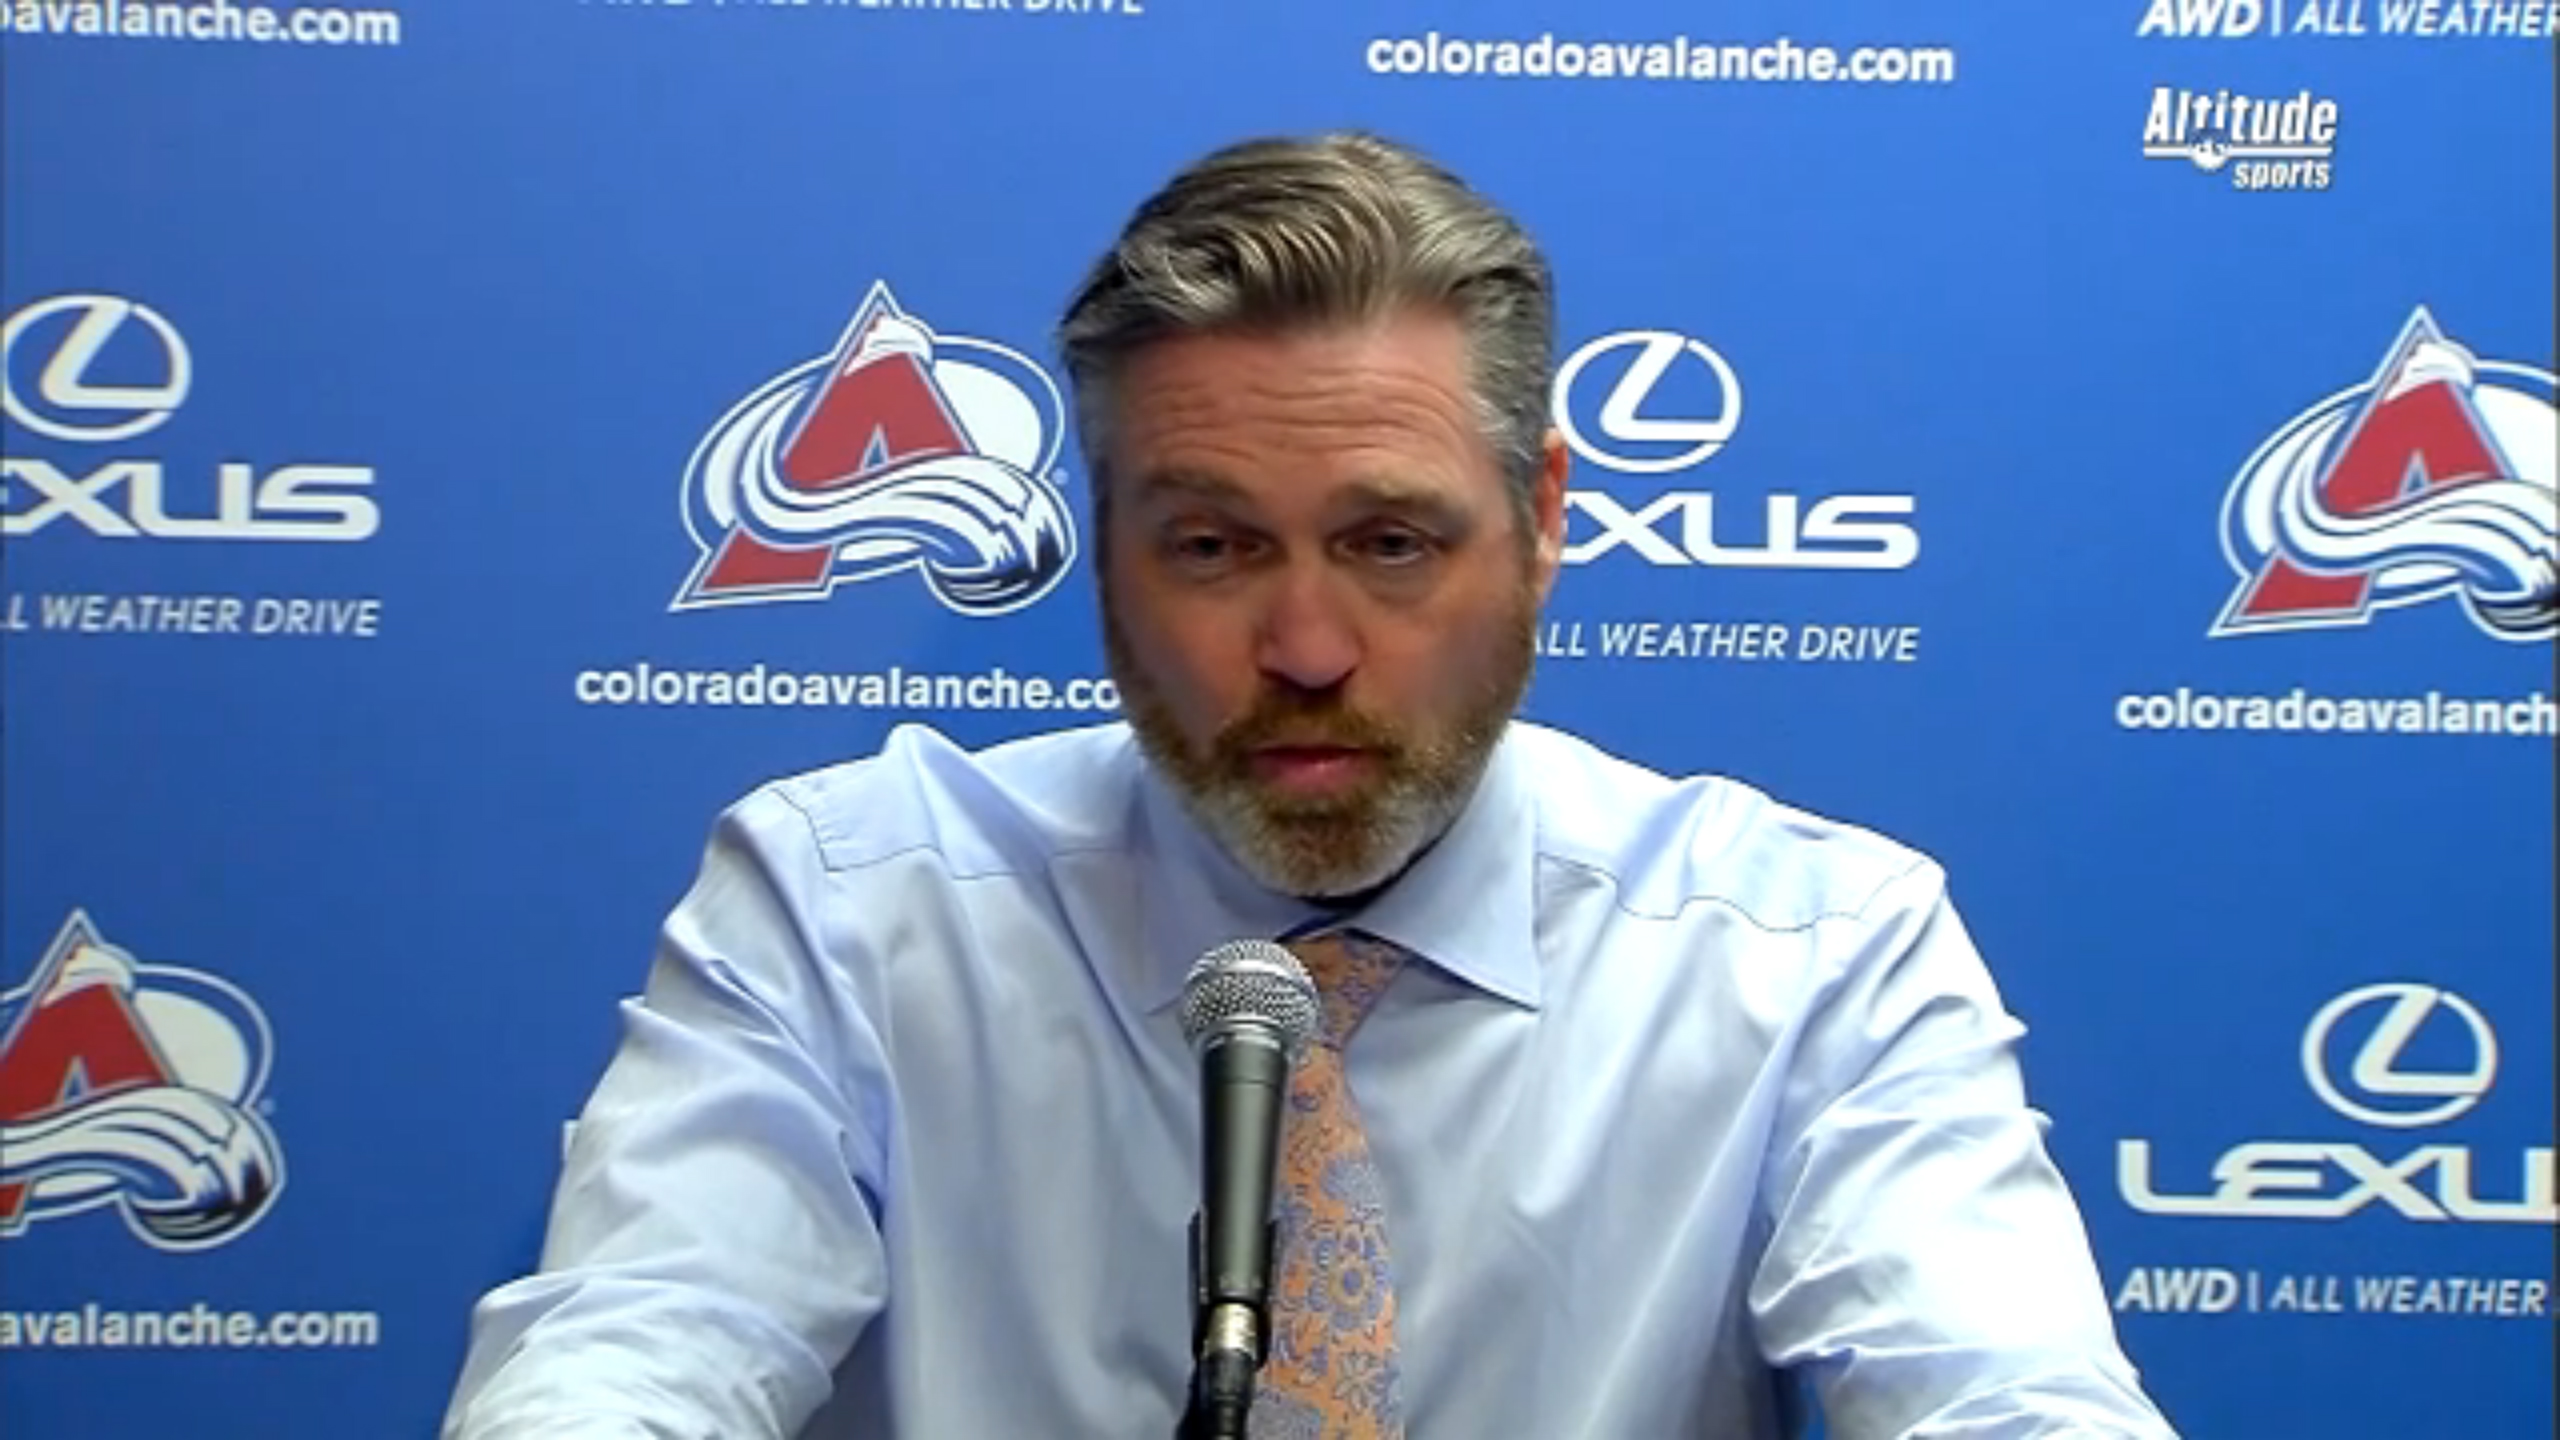 Patrick-Roy-Post-Game-032416.jpg